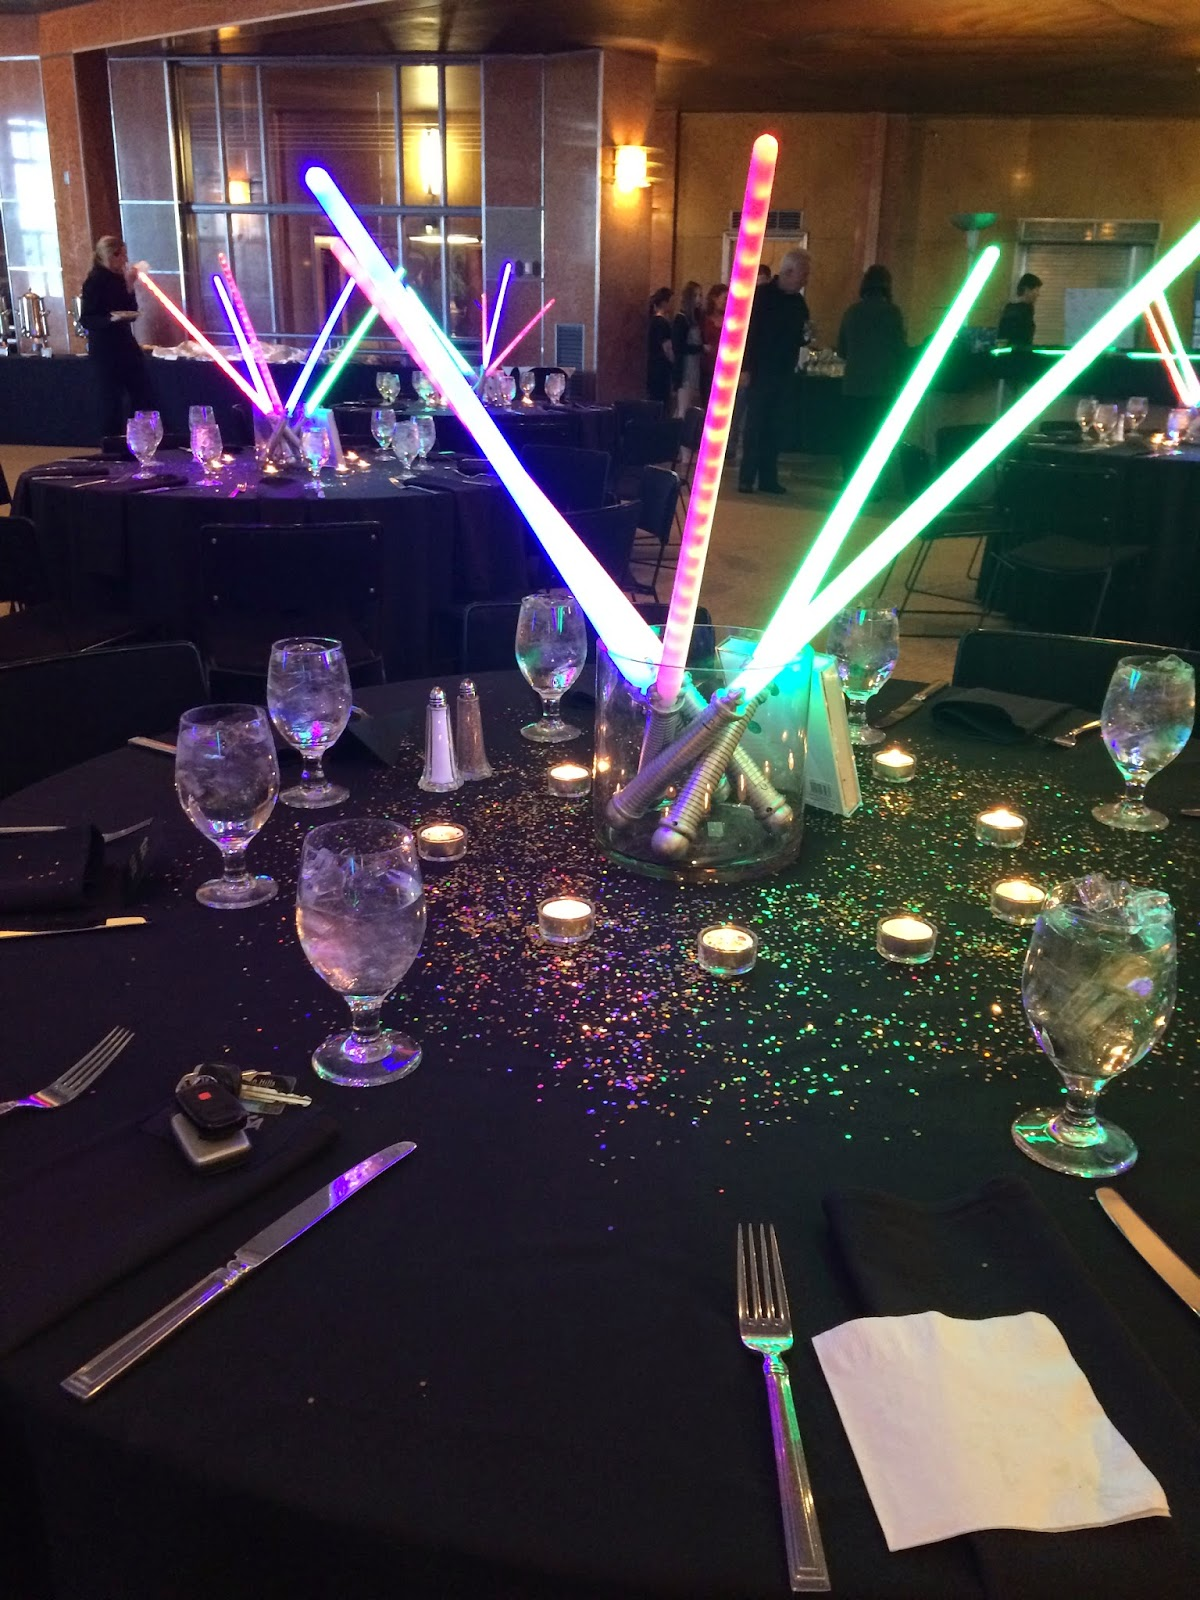 Margotmadison star wars themed bar mitzvah for Star wars dekoration